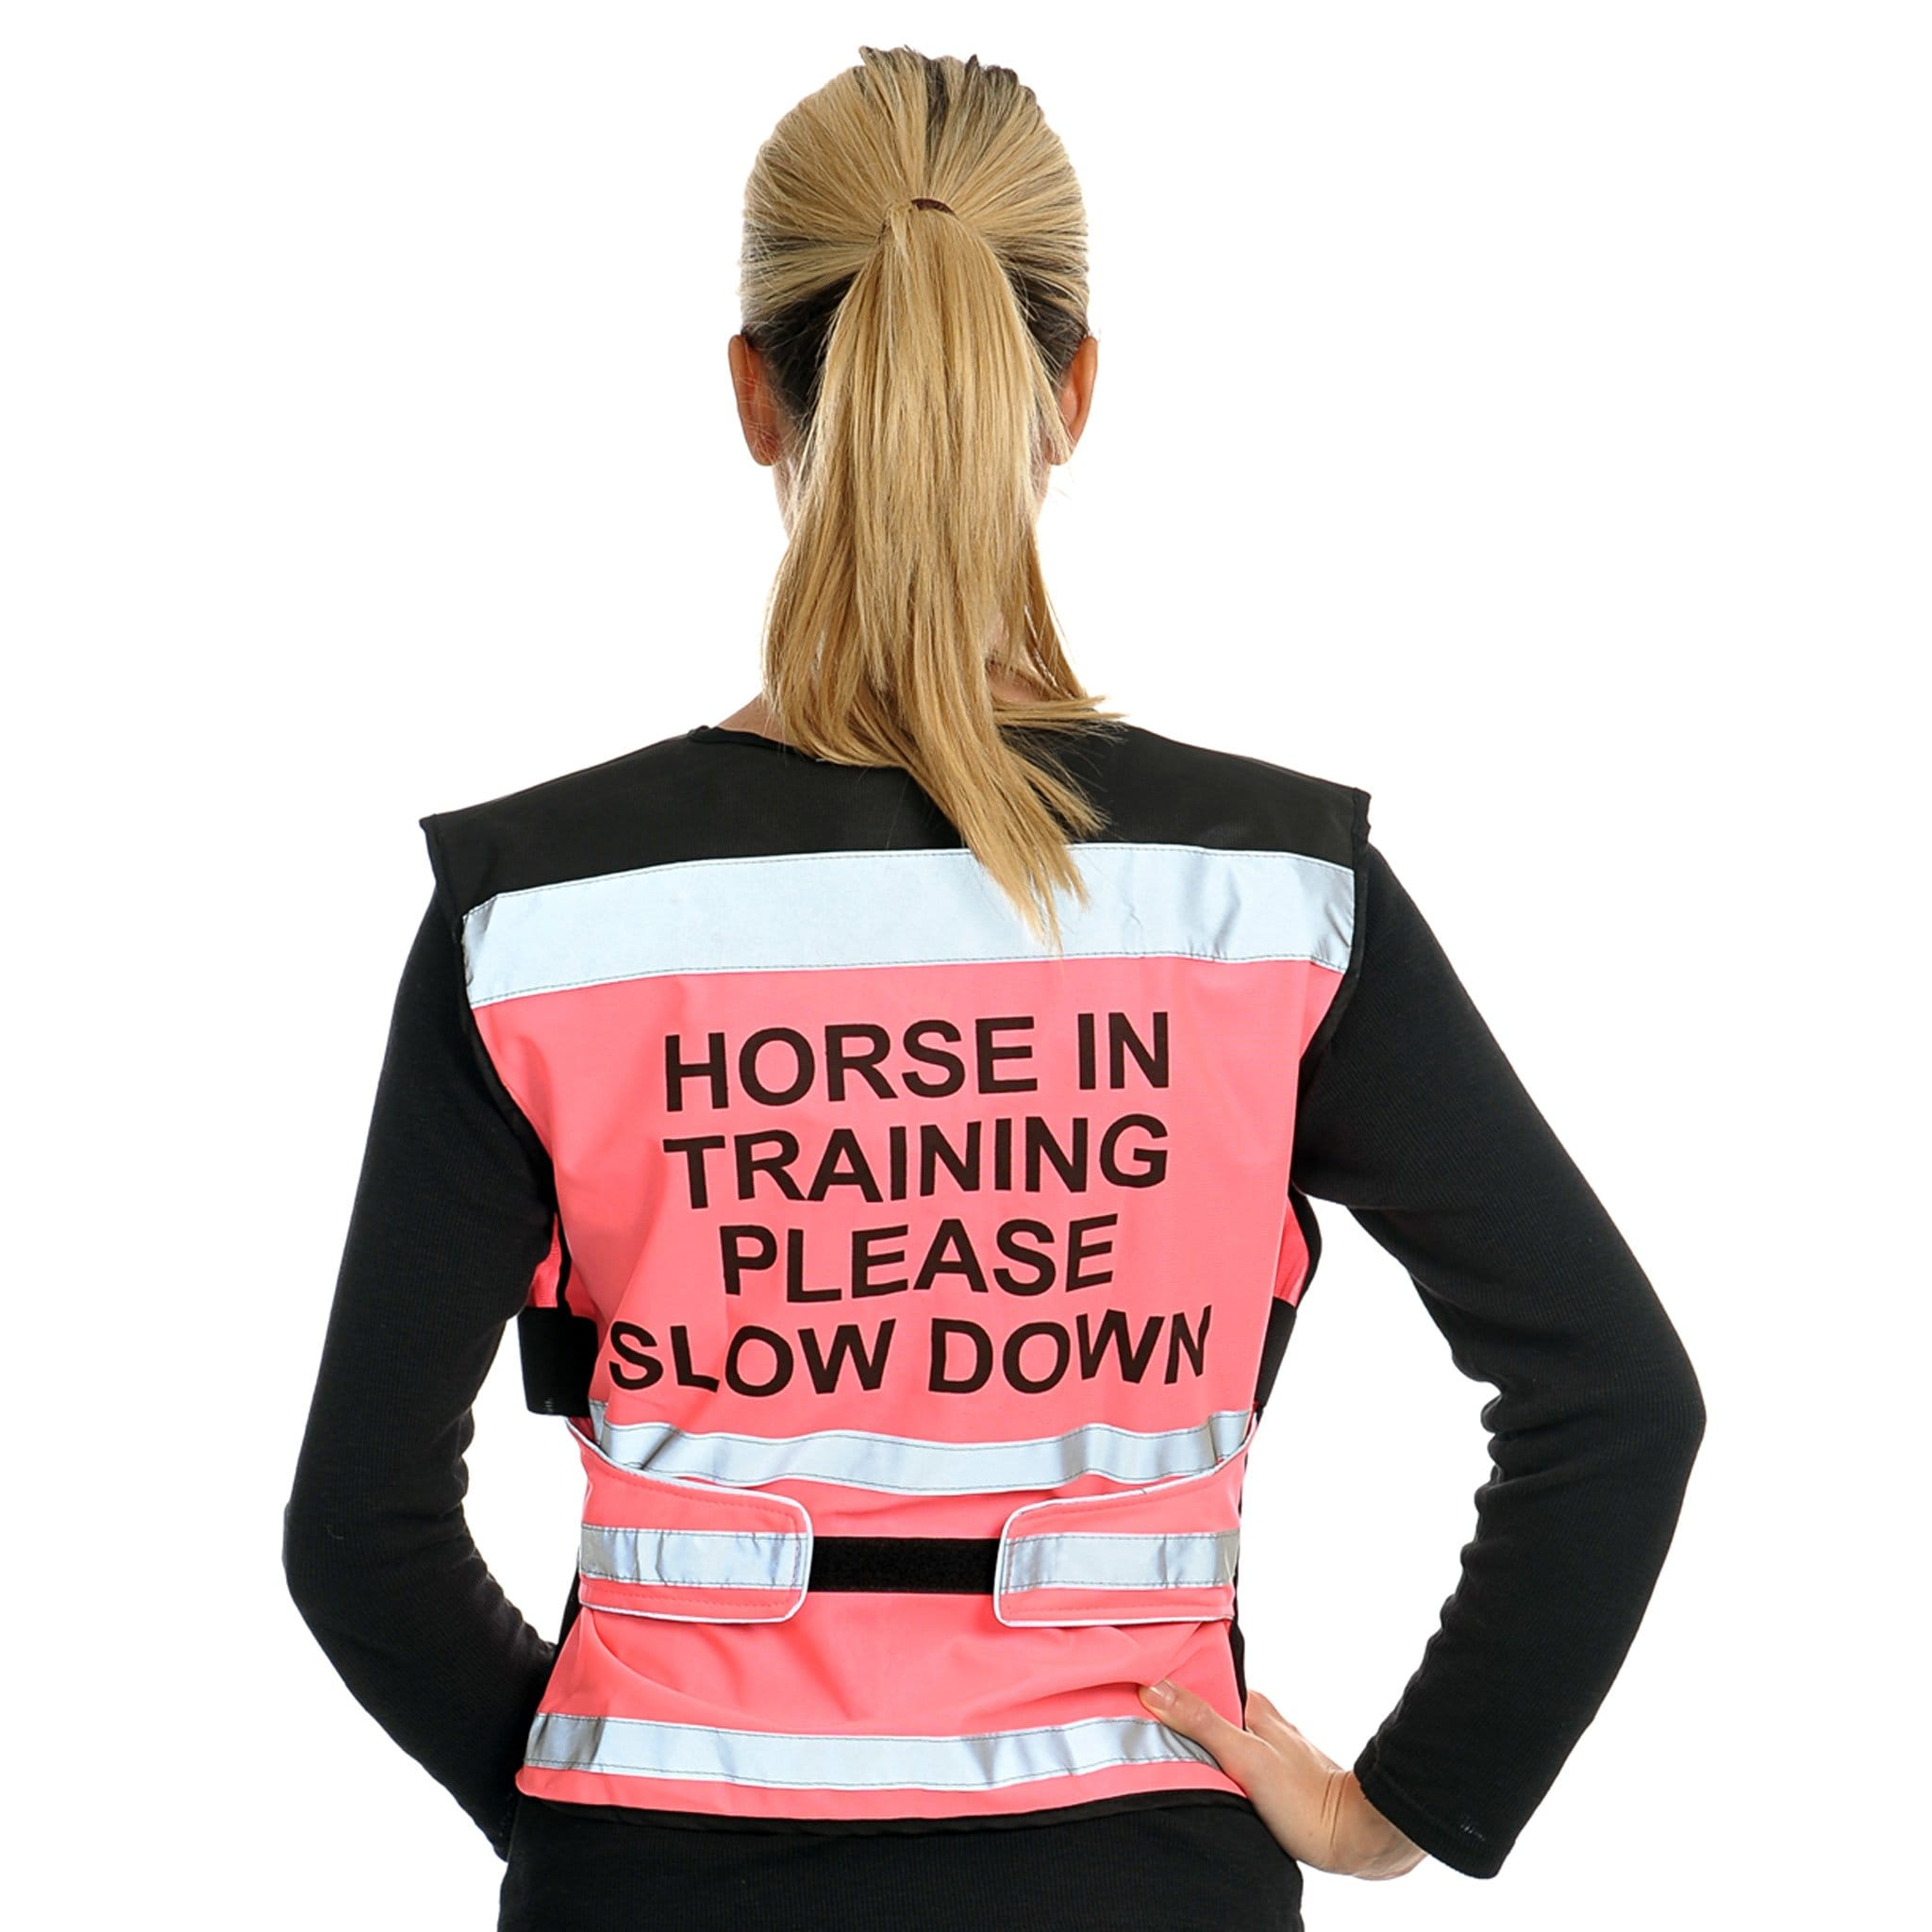 Equisafety Air Waistcoat Horse In Training Please Slow Down Pink Female Model Rear View 613791